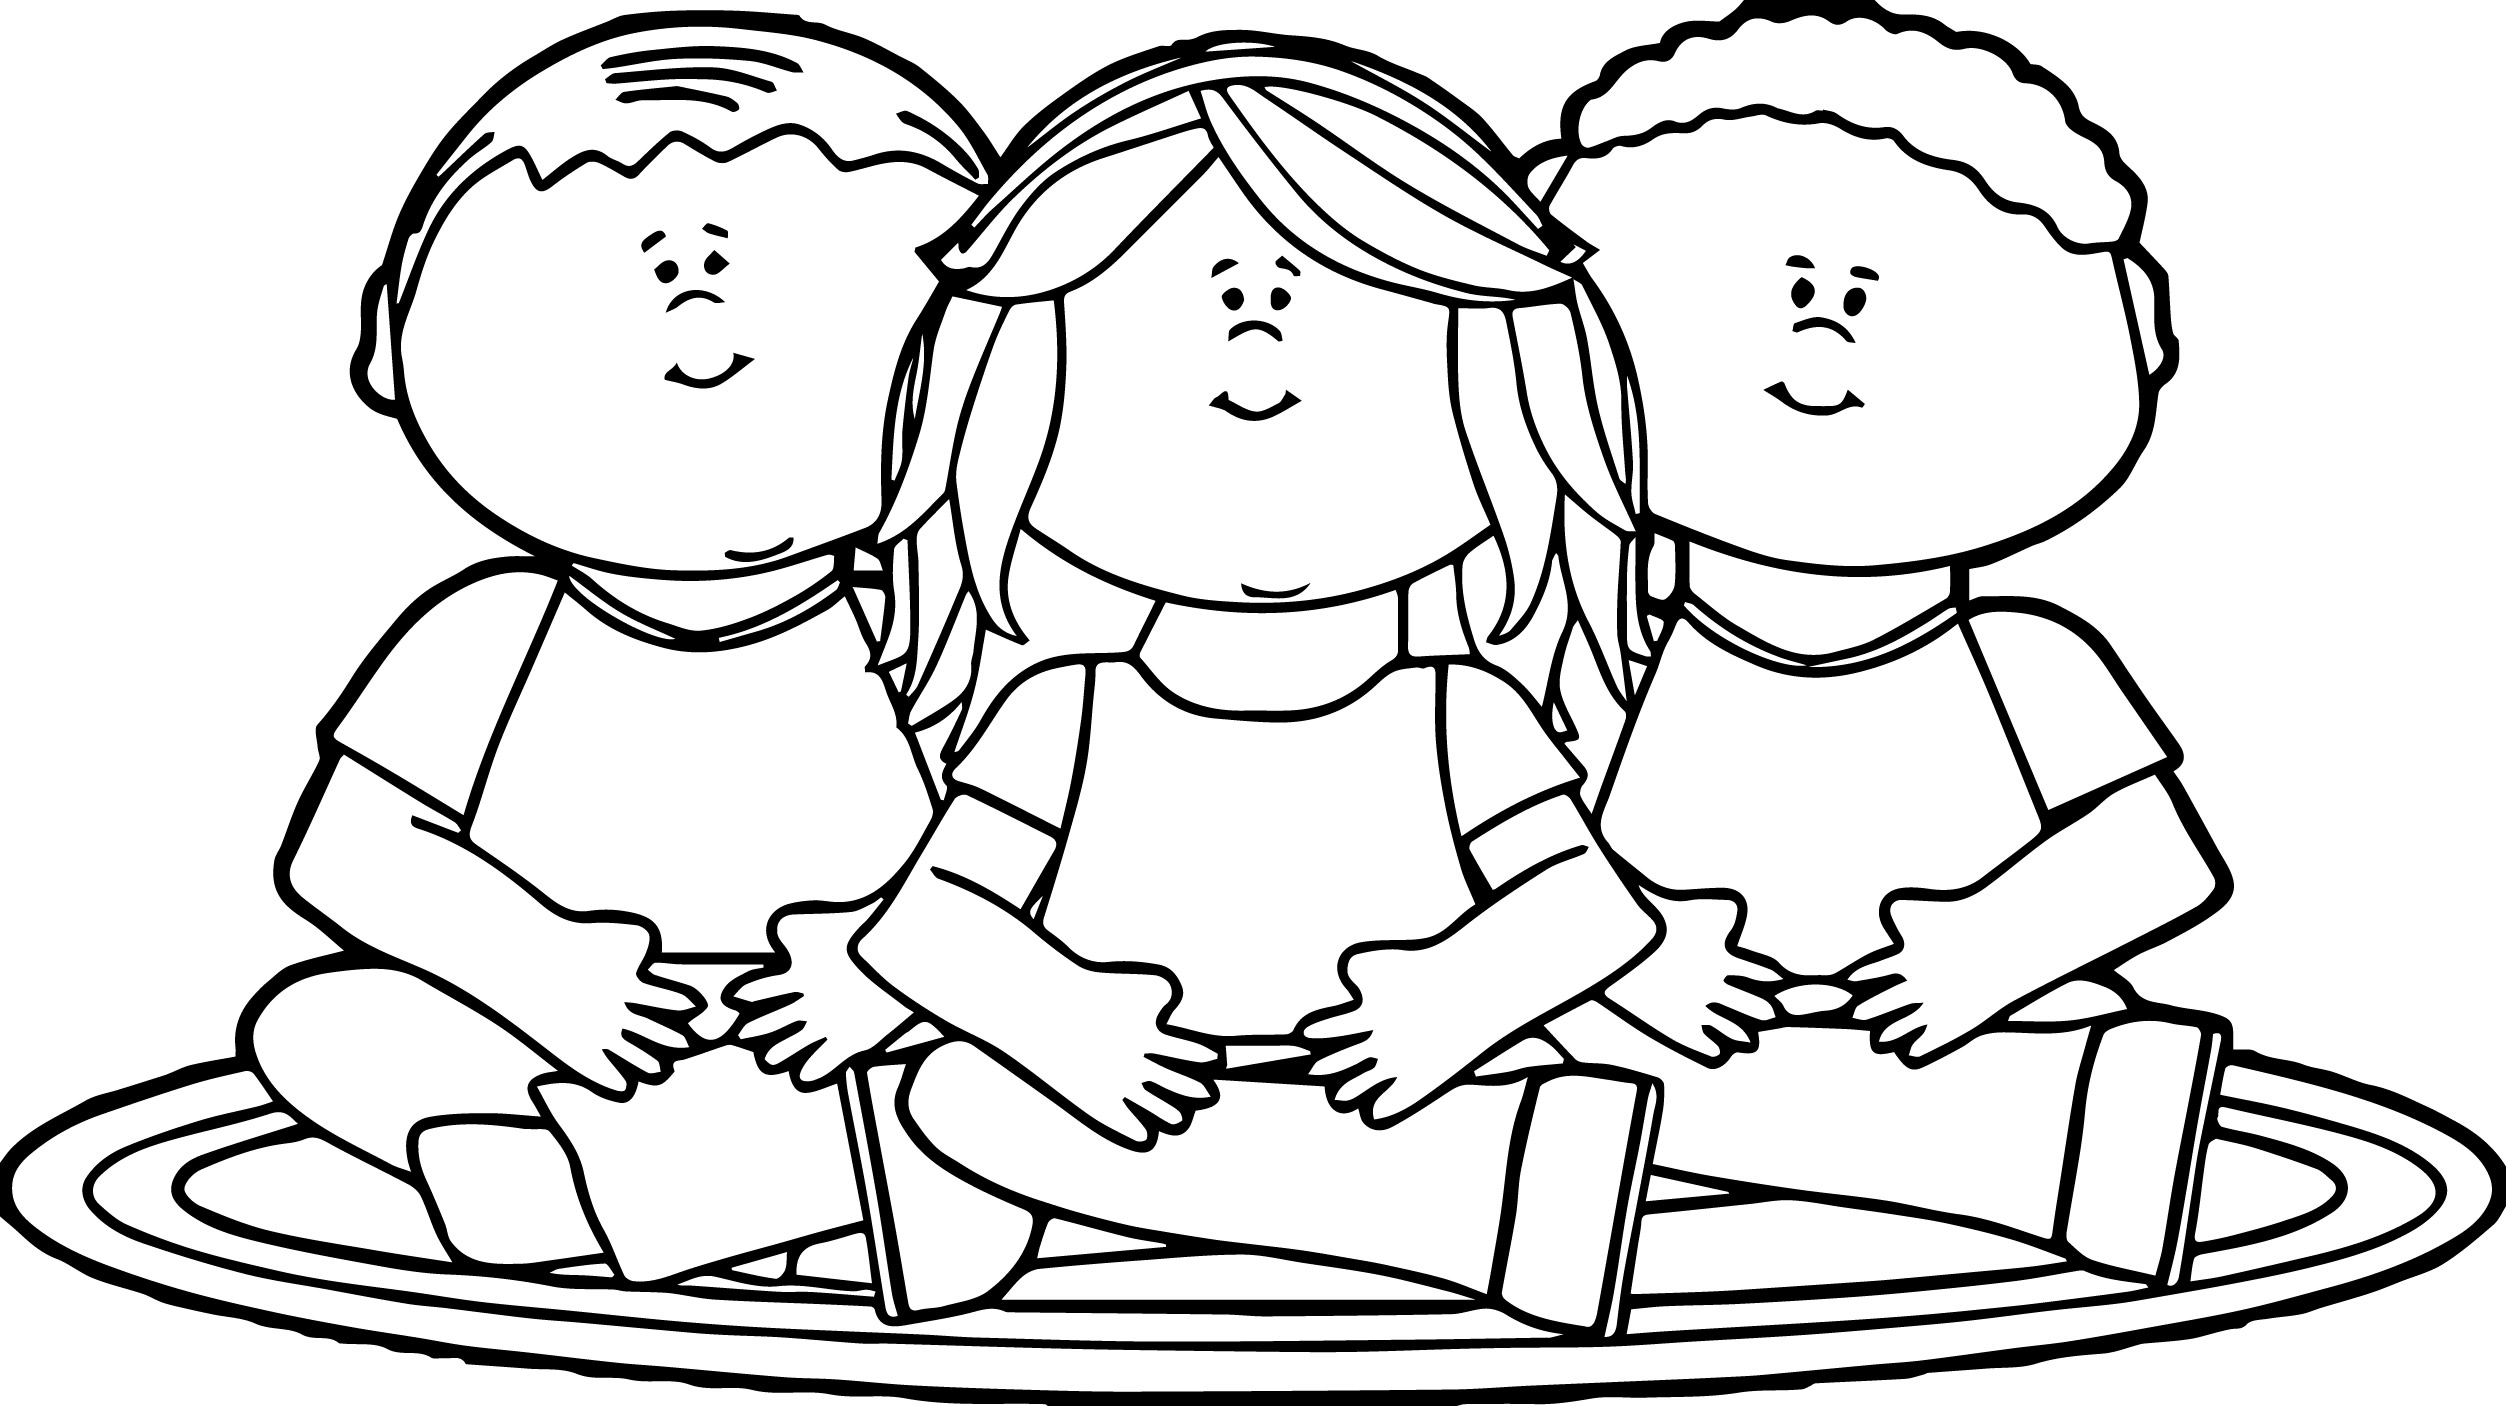 2506x1406 Kids Sitting On School Rug Coloring Page Wecoloringpage